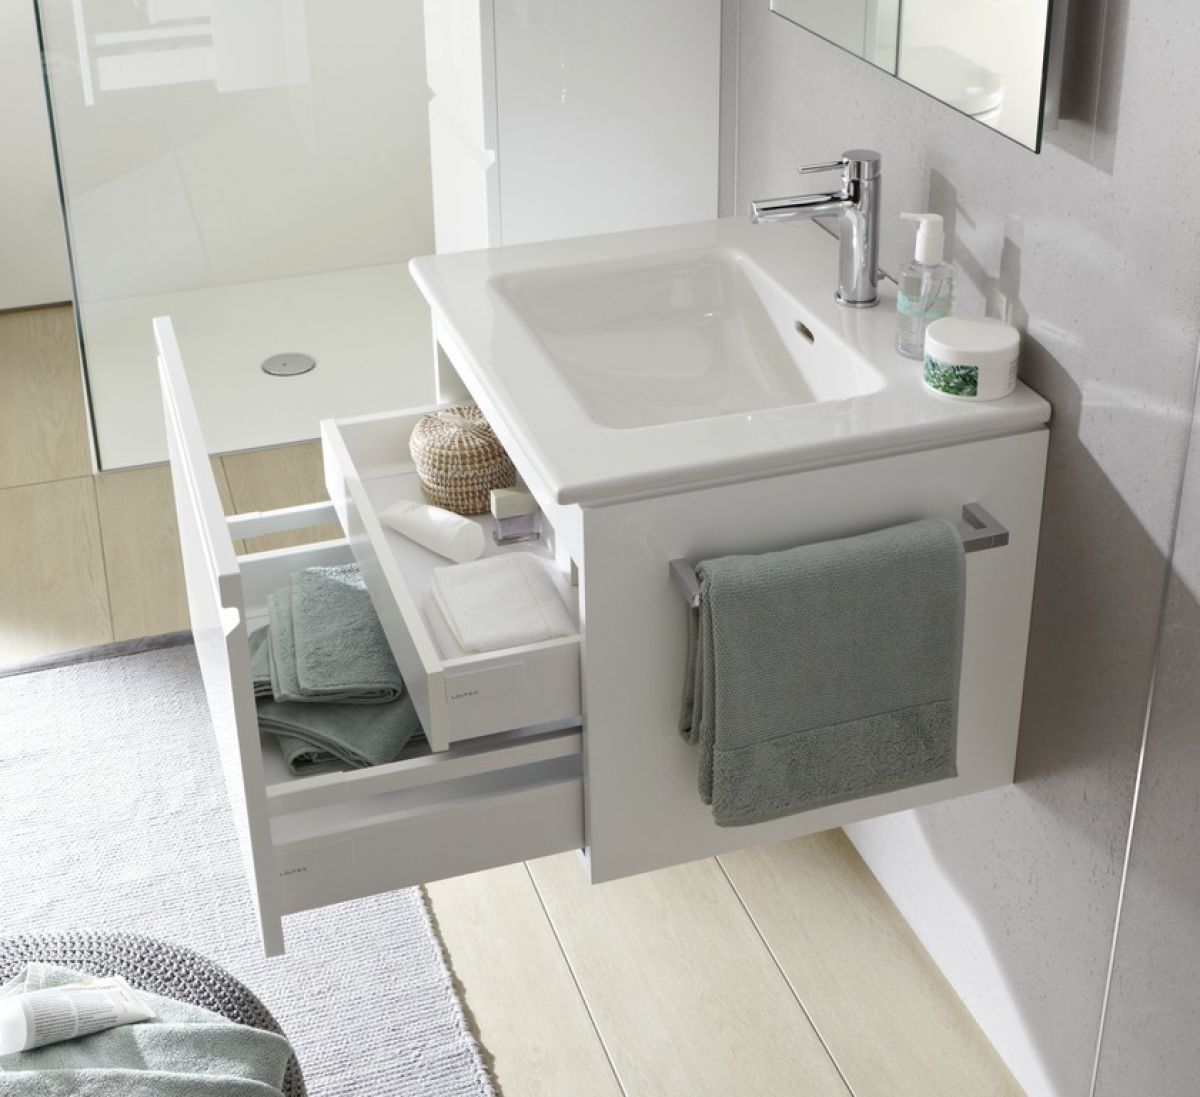 Laufen Pro S Single Drawer Vanity Unit Amp Slim Basin Uk Bathrooms